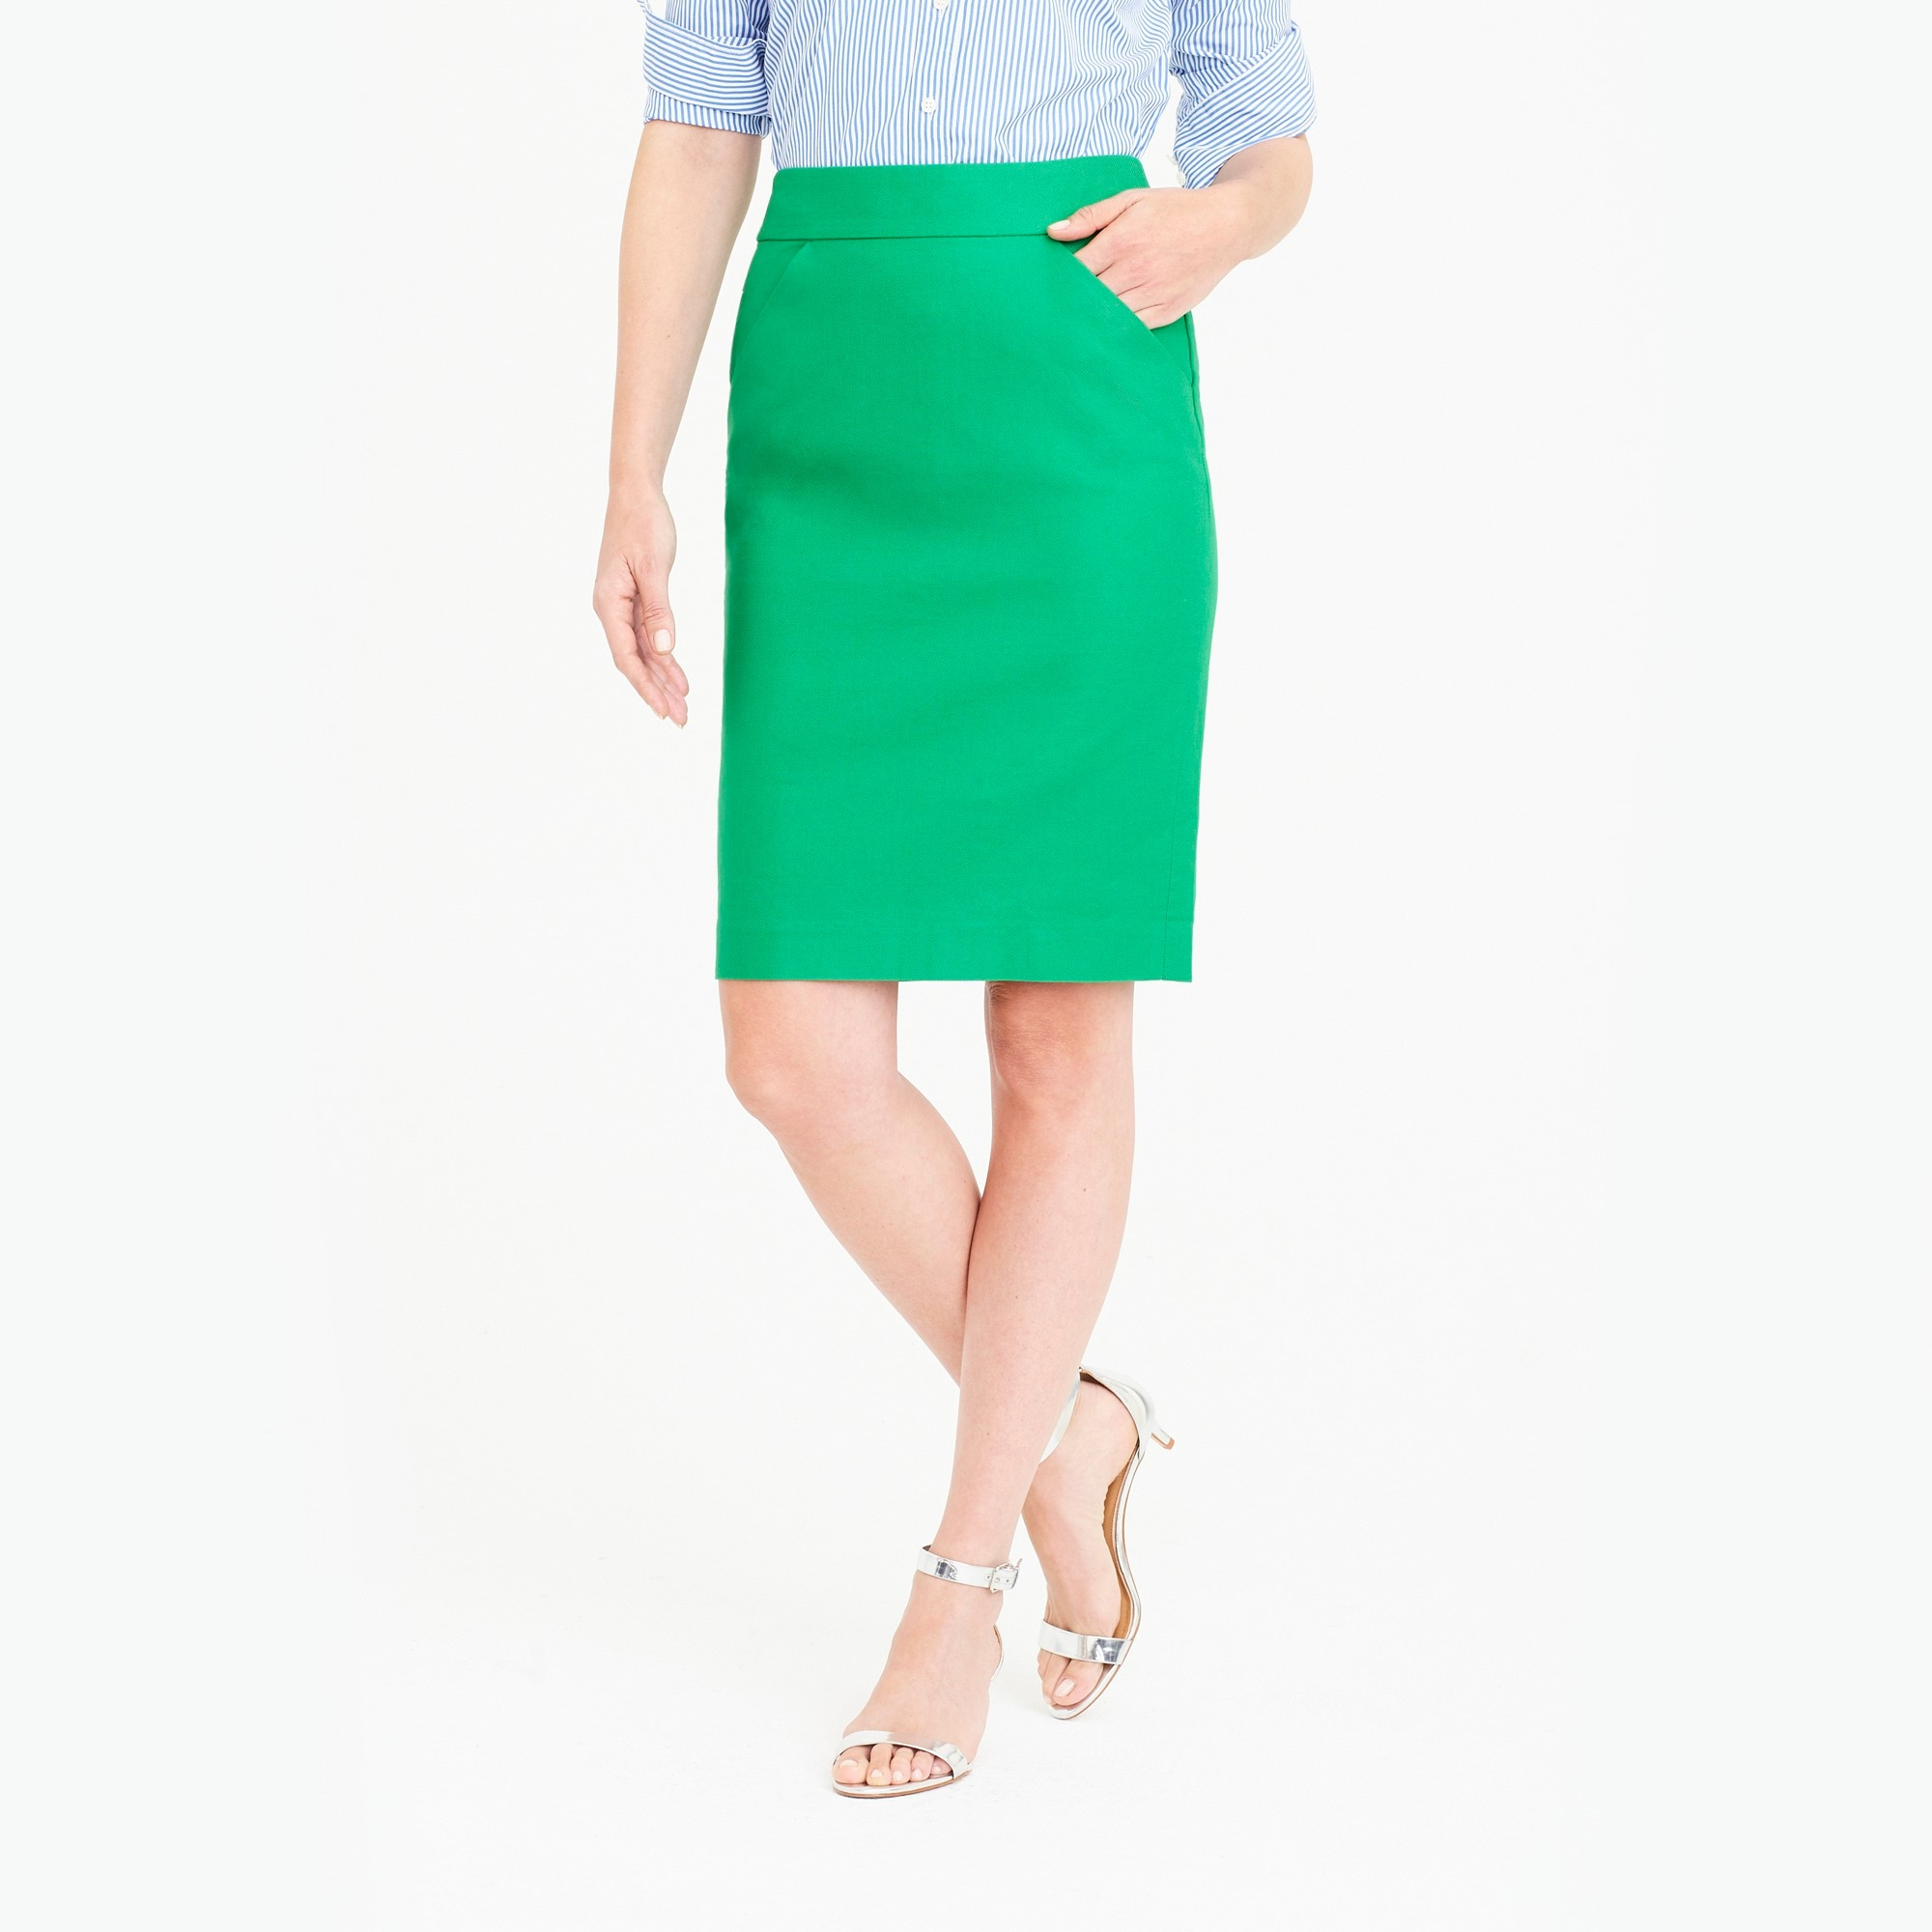 Pencil skirt in double-serge cotton factorywomen skirts c